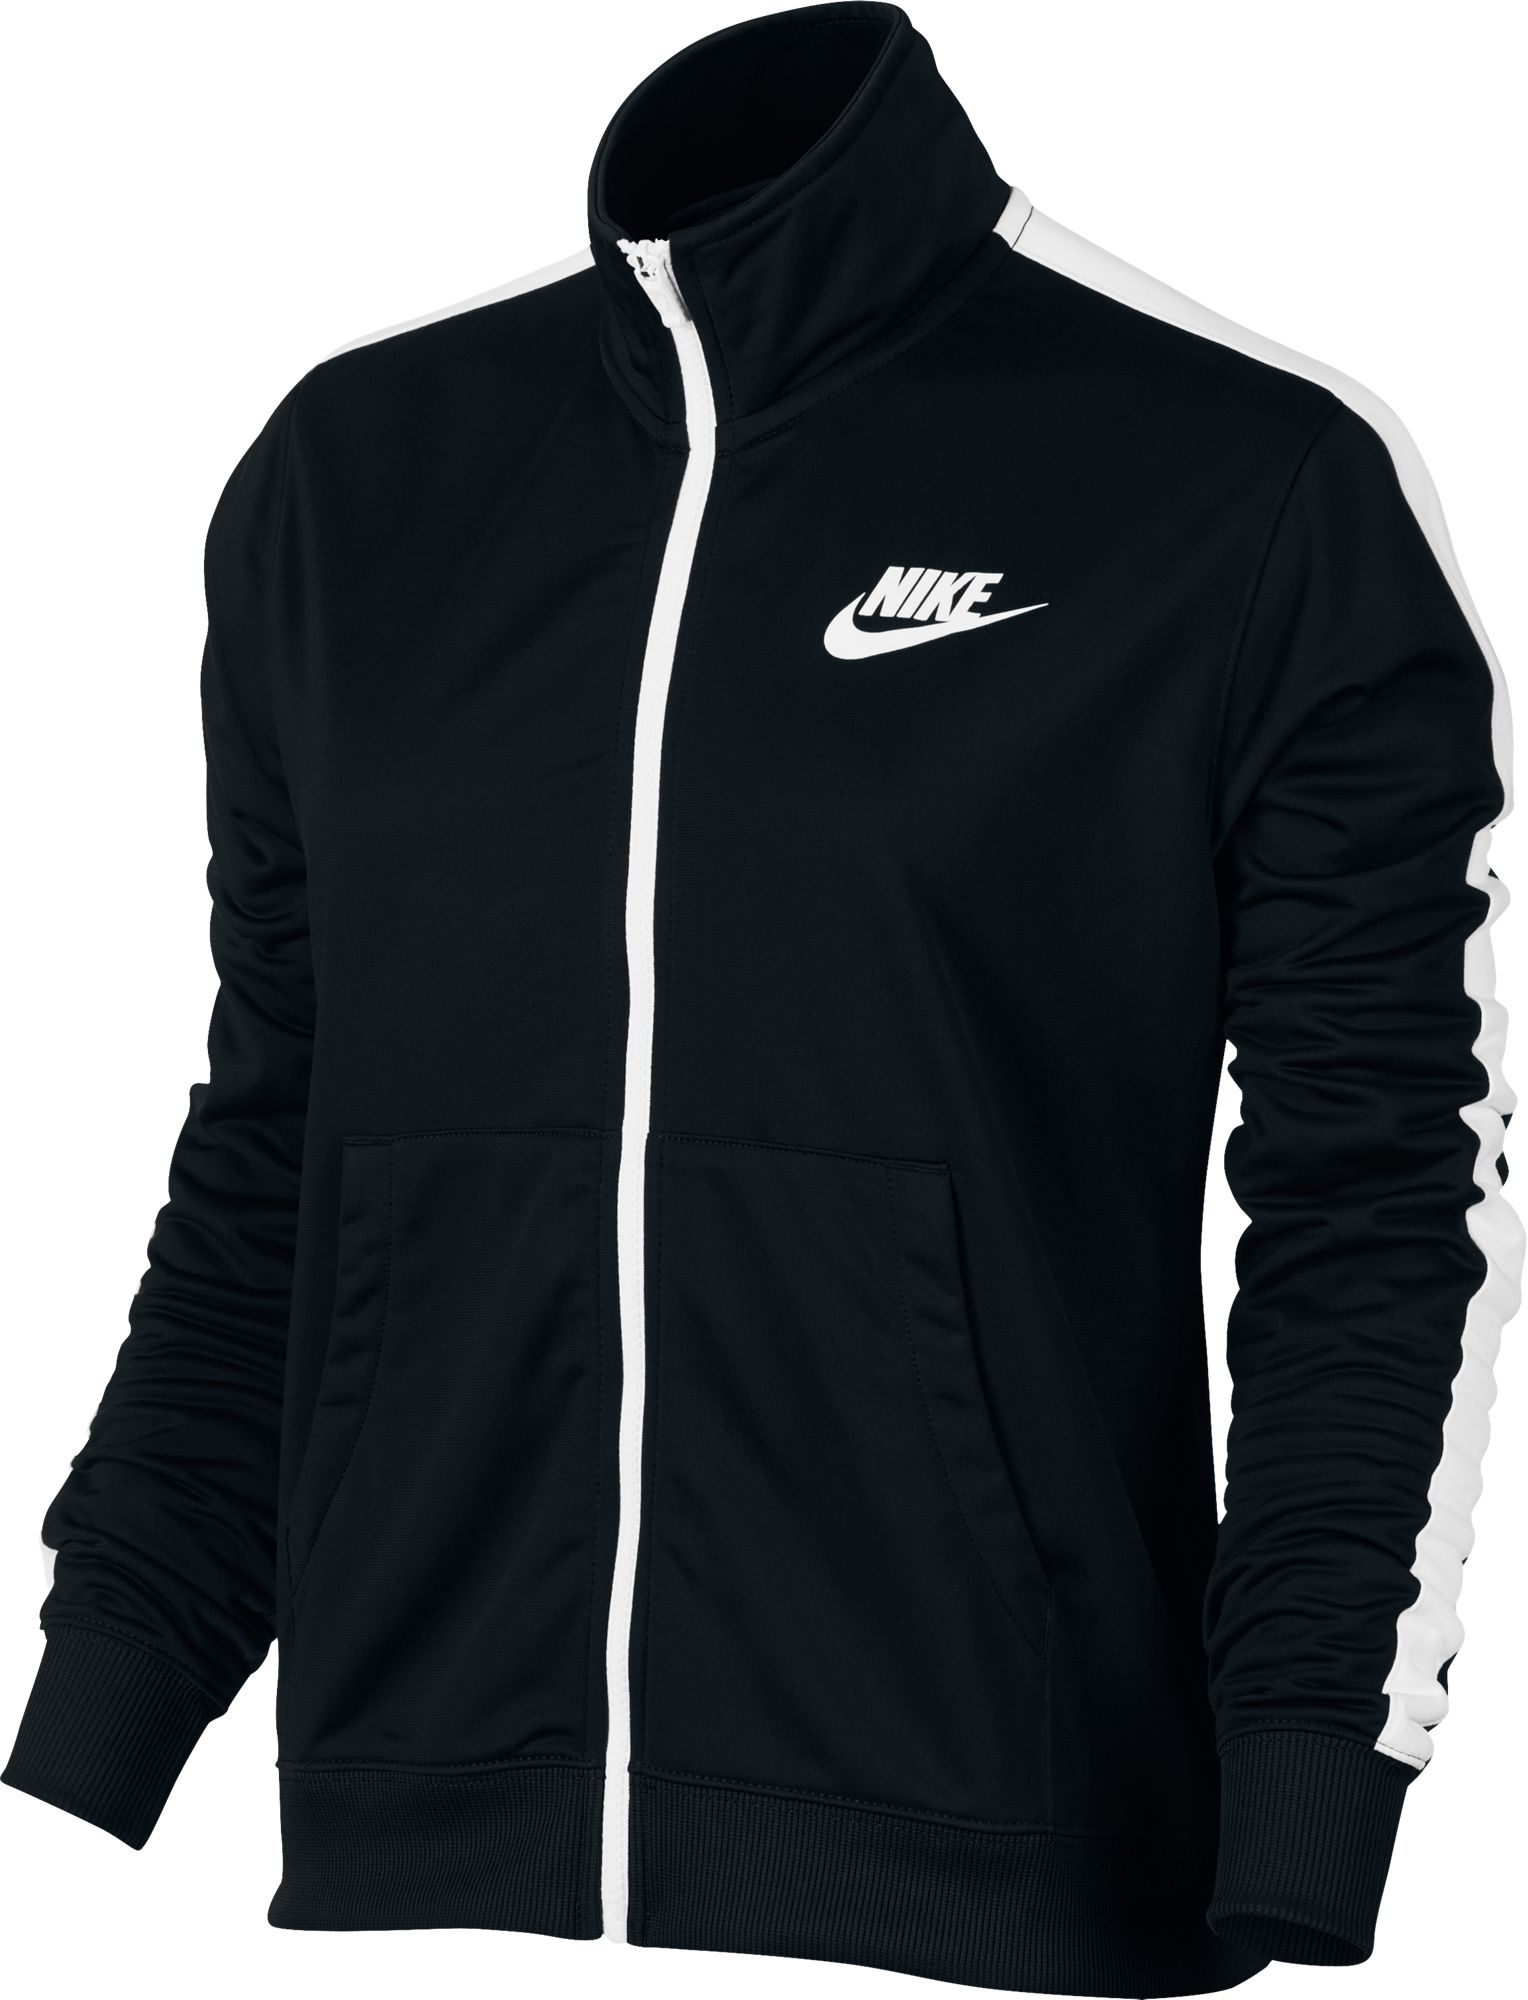 e1710a9d7 Nike Women's NSW Track Jacket (BLACK/WHITE, Size X Small) - Women's  Athletic Apparel, Women's Athletic Performance Tops at Academy Sports